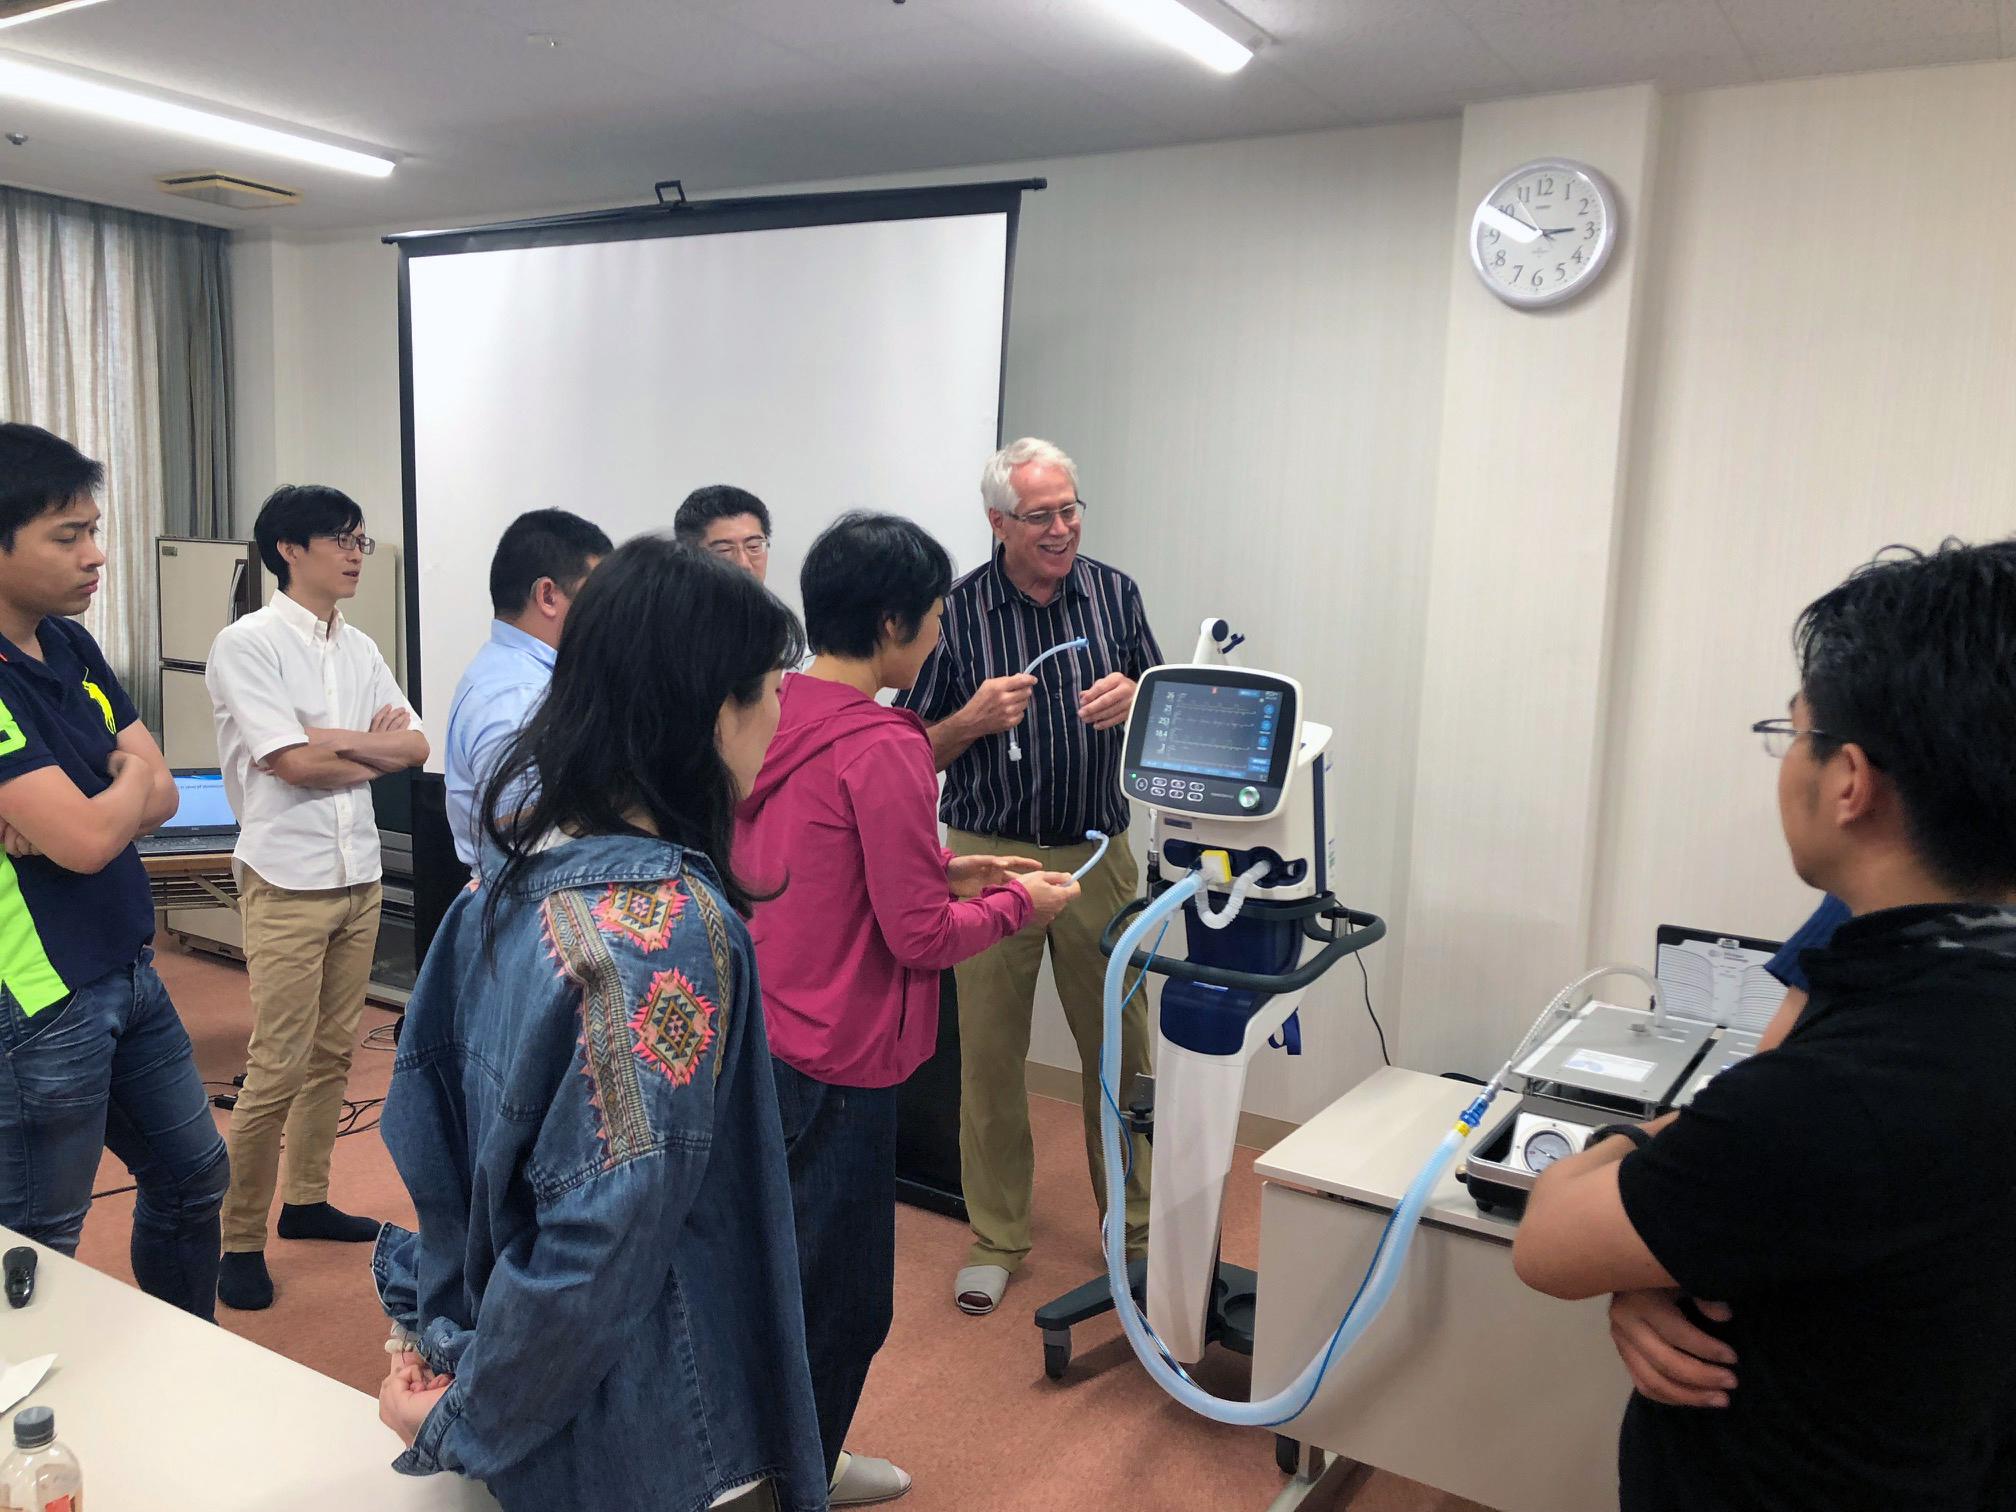 Ashworth teaching students how to use a ventilator